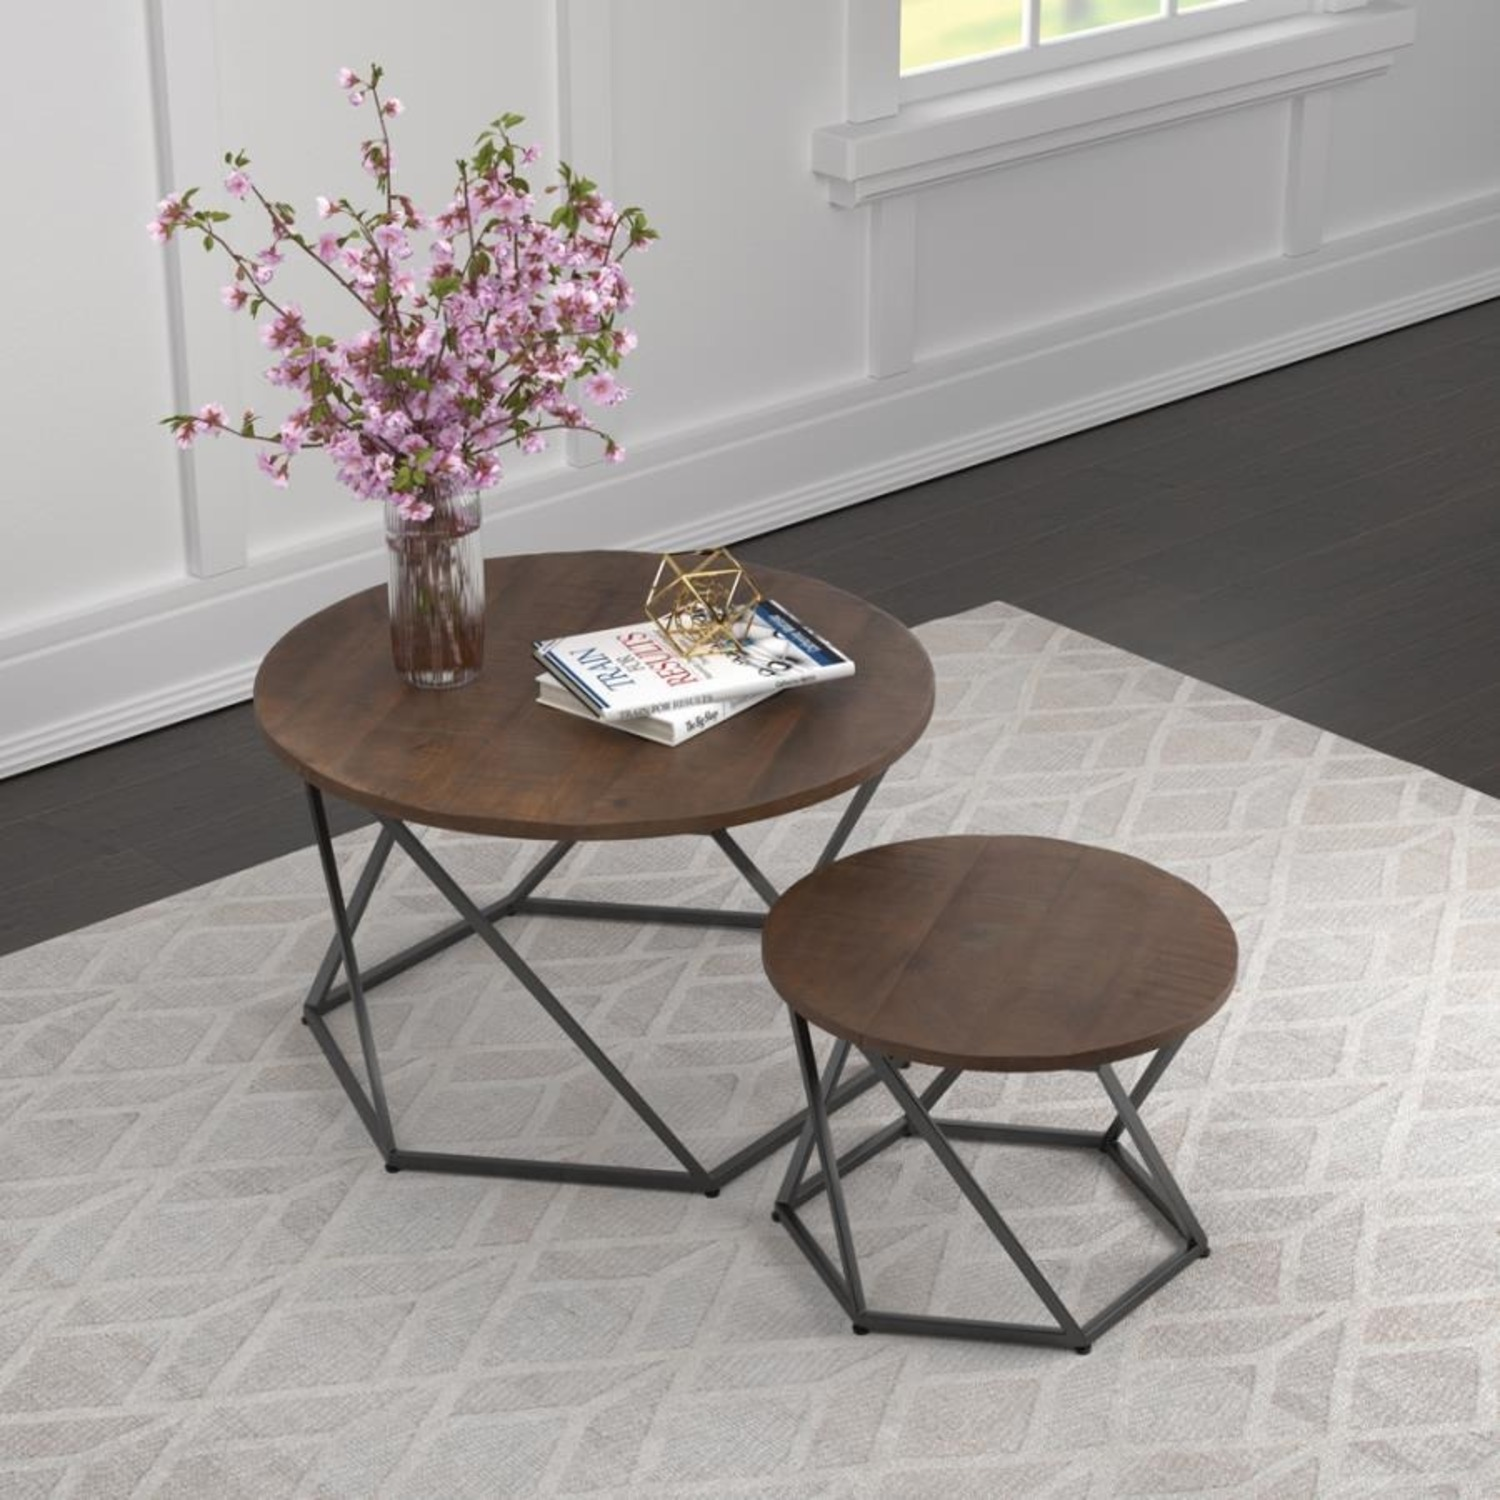 Nesting Table In Natural & Matte Black Finish - image-4